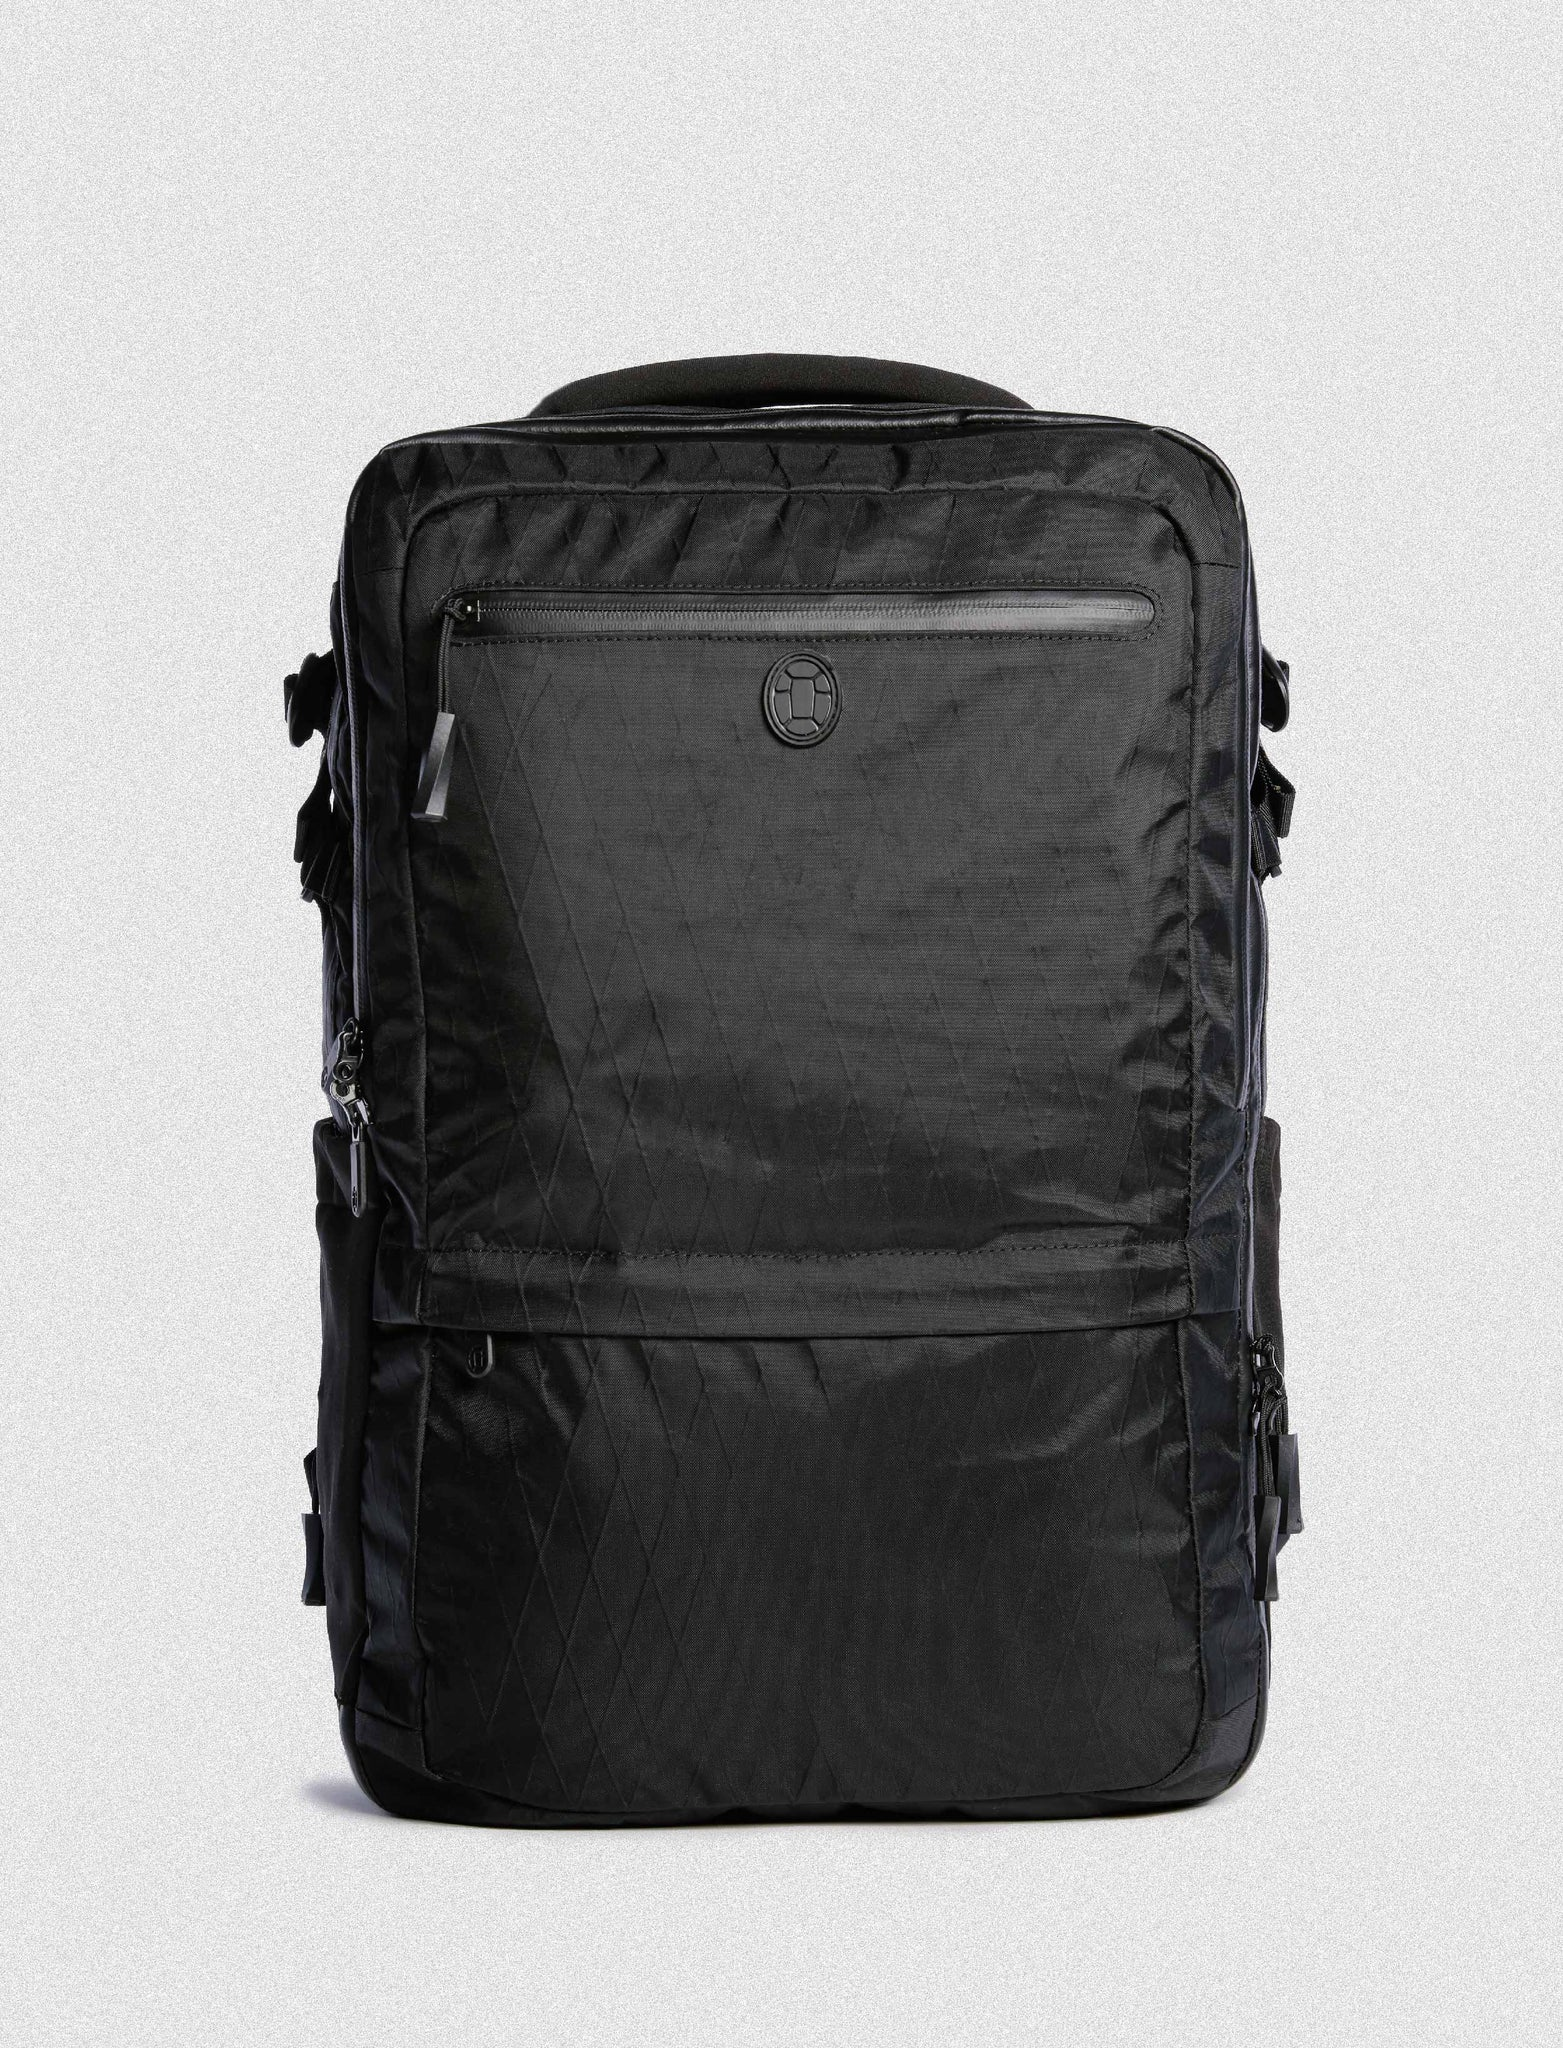 Outbreaker Backpack exterior pockets